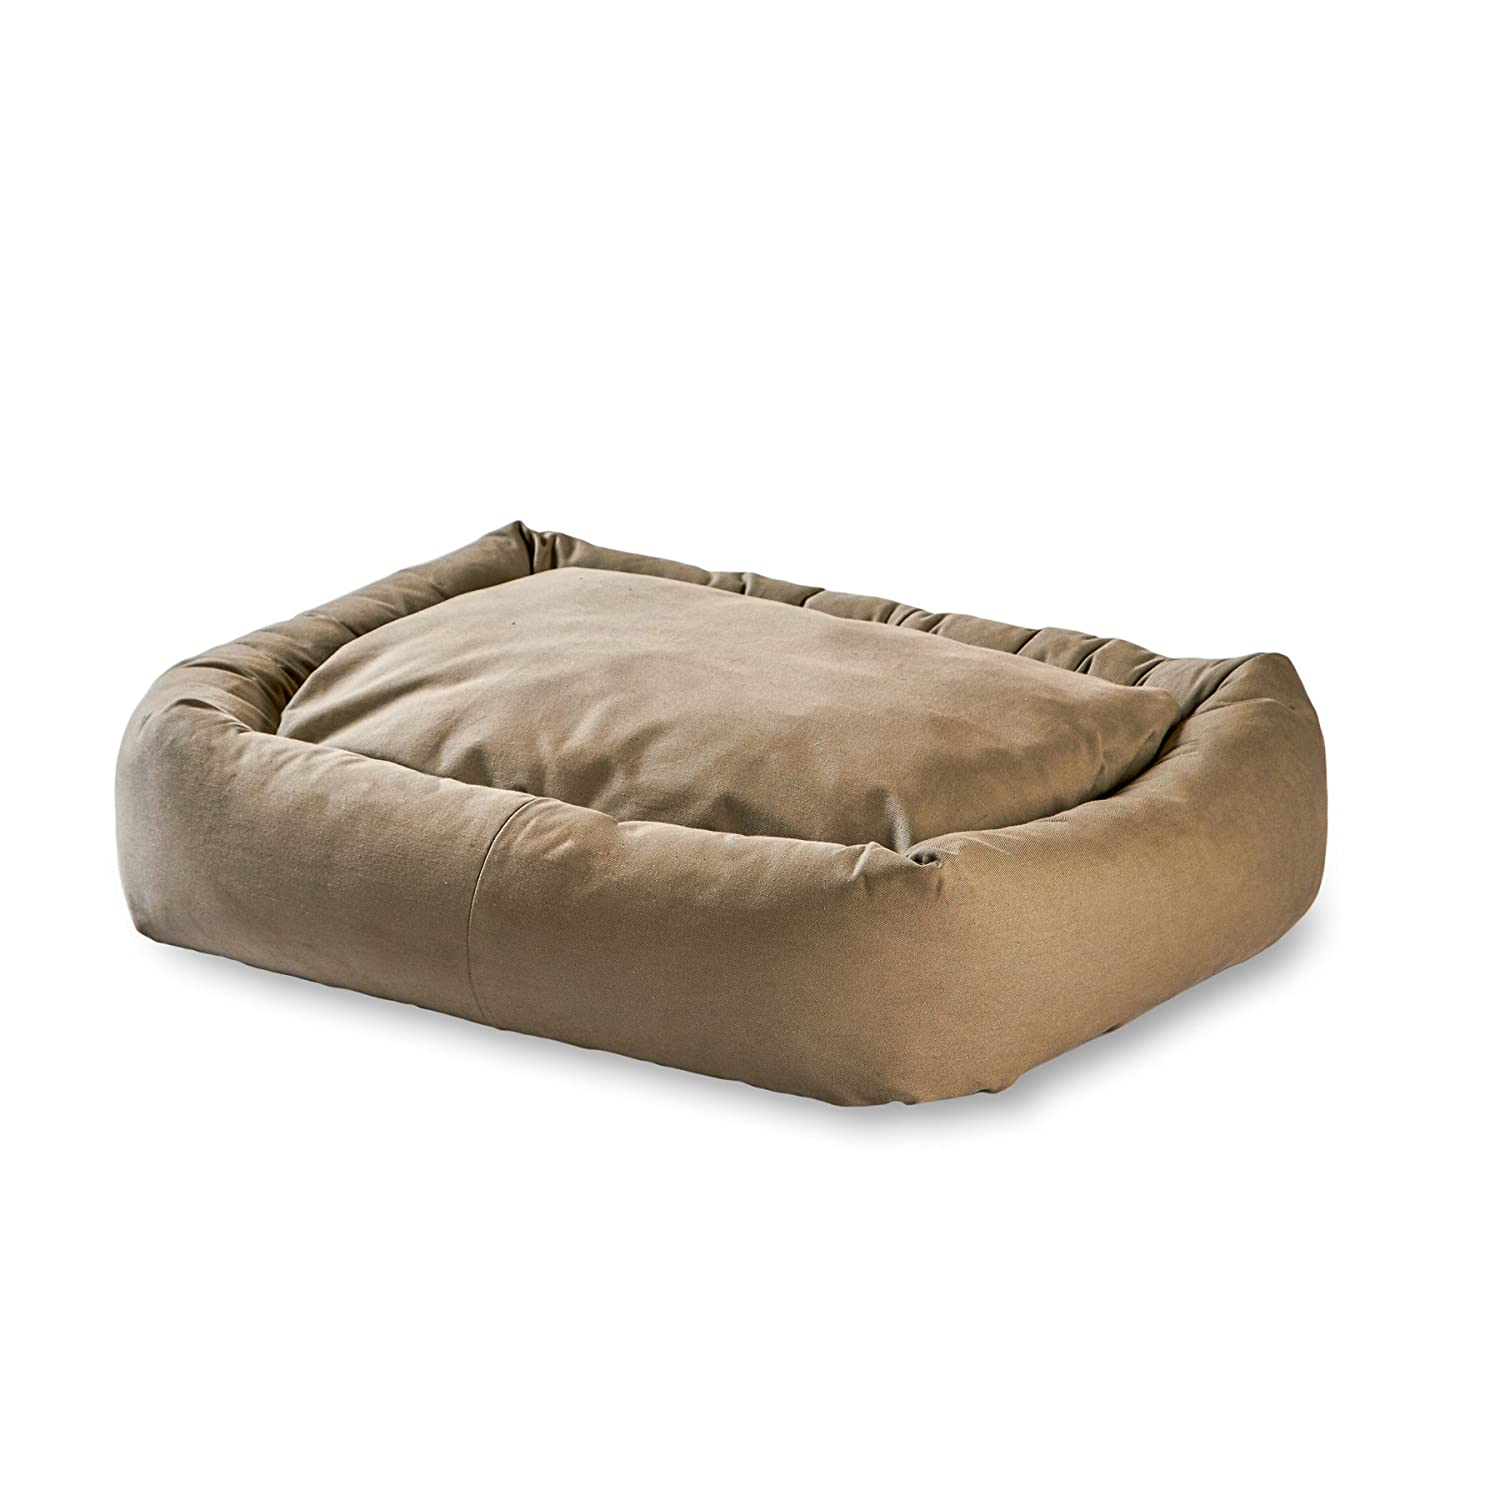 Greystone L XL Greystone L XL Happy Hounds Max Rectangle Indoor Outdoor Bumper Dog Bed, Large X-Large, Greystone